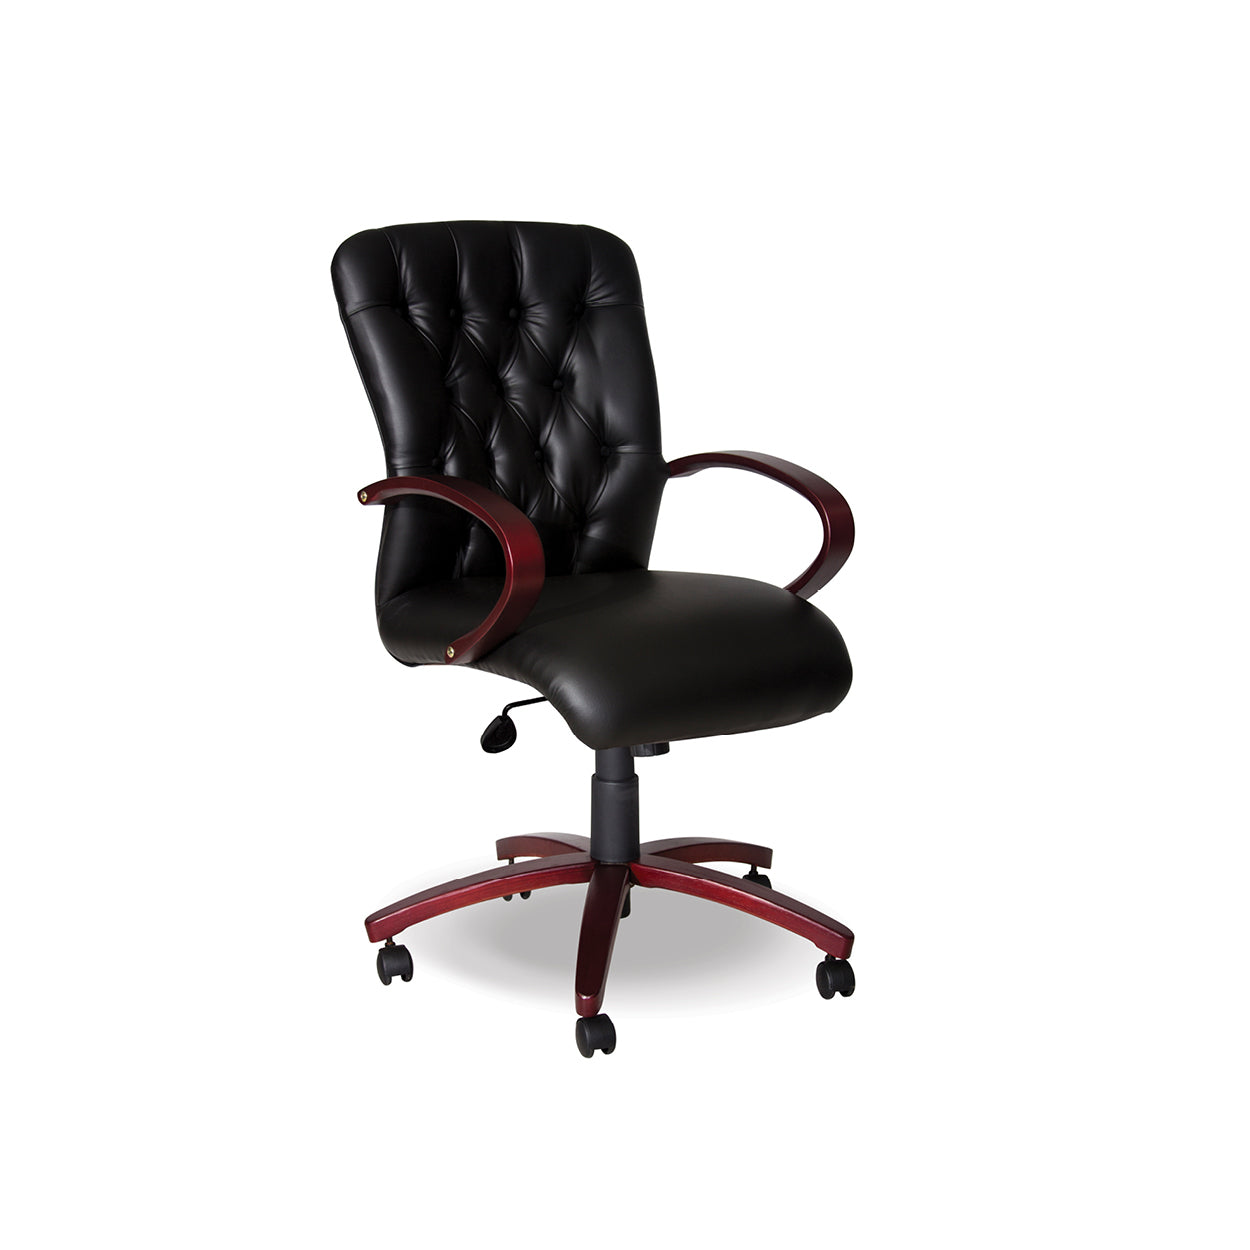 Hedcor Adda Mid back office chair